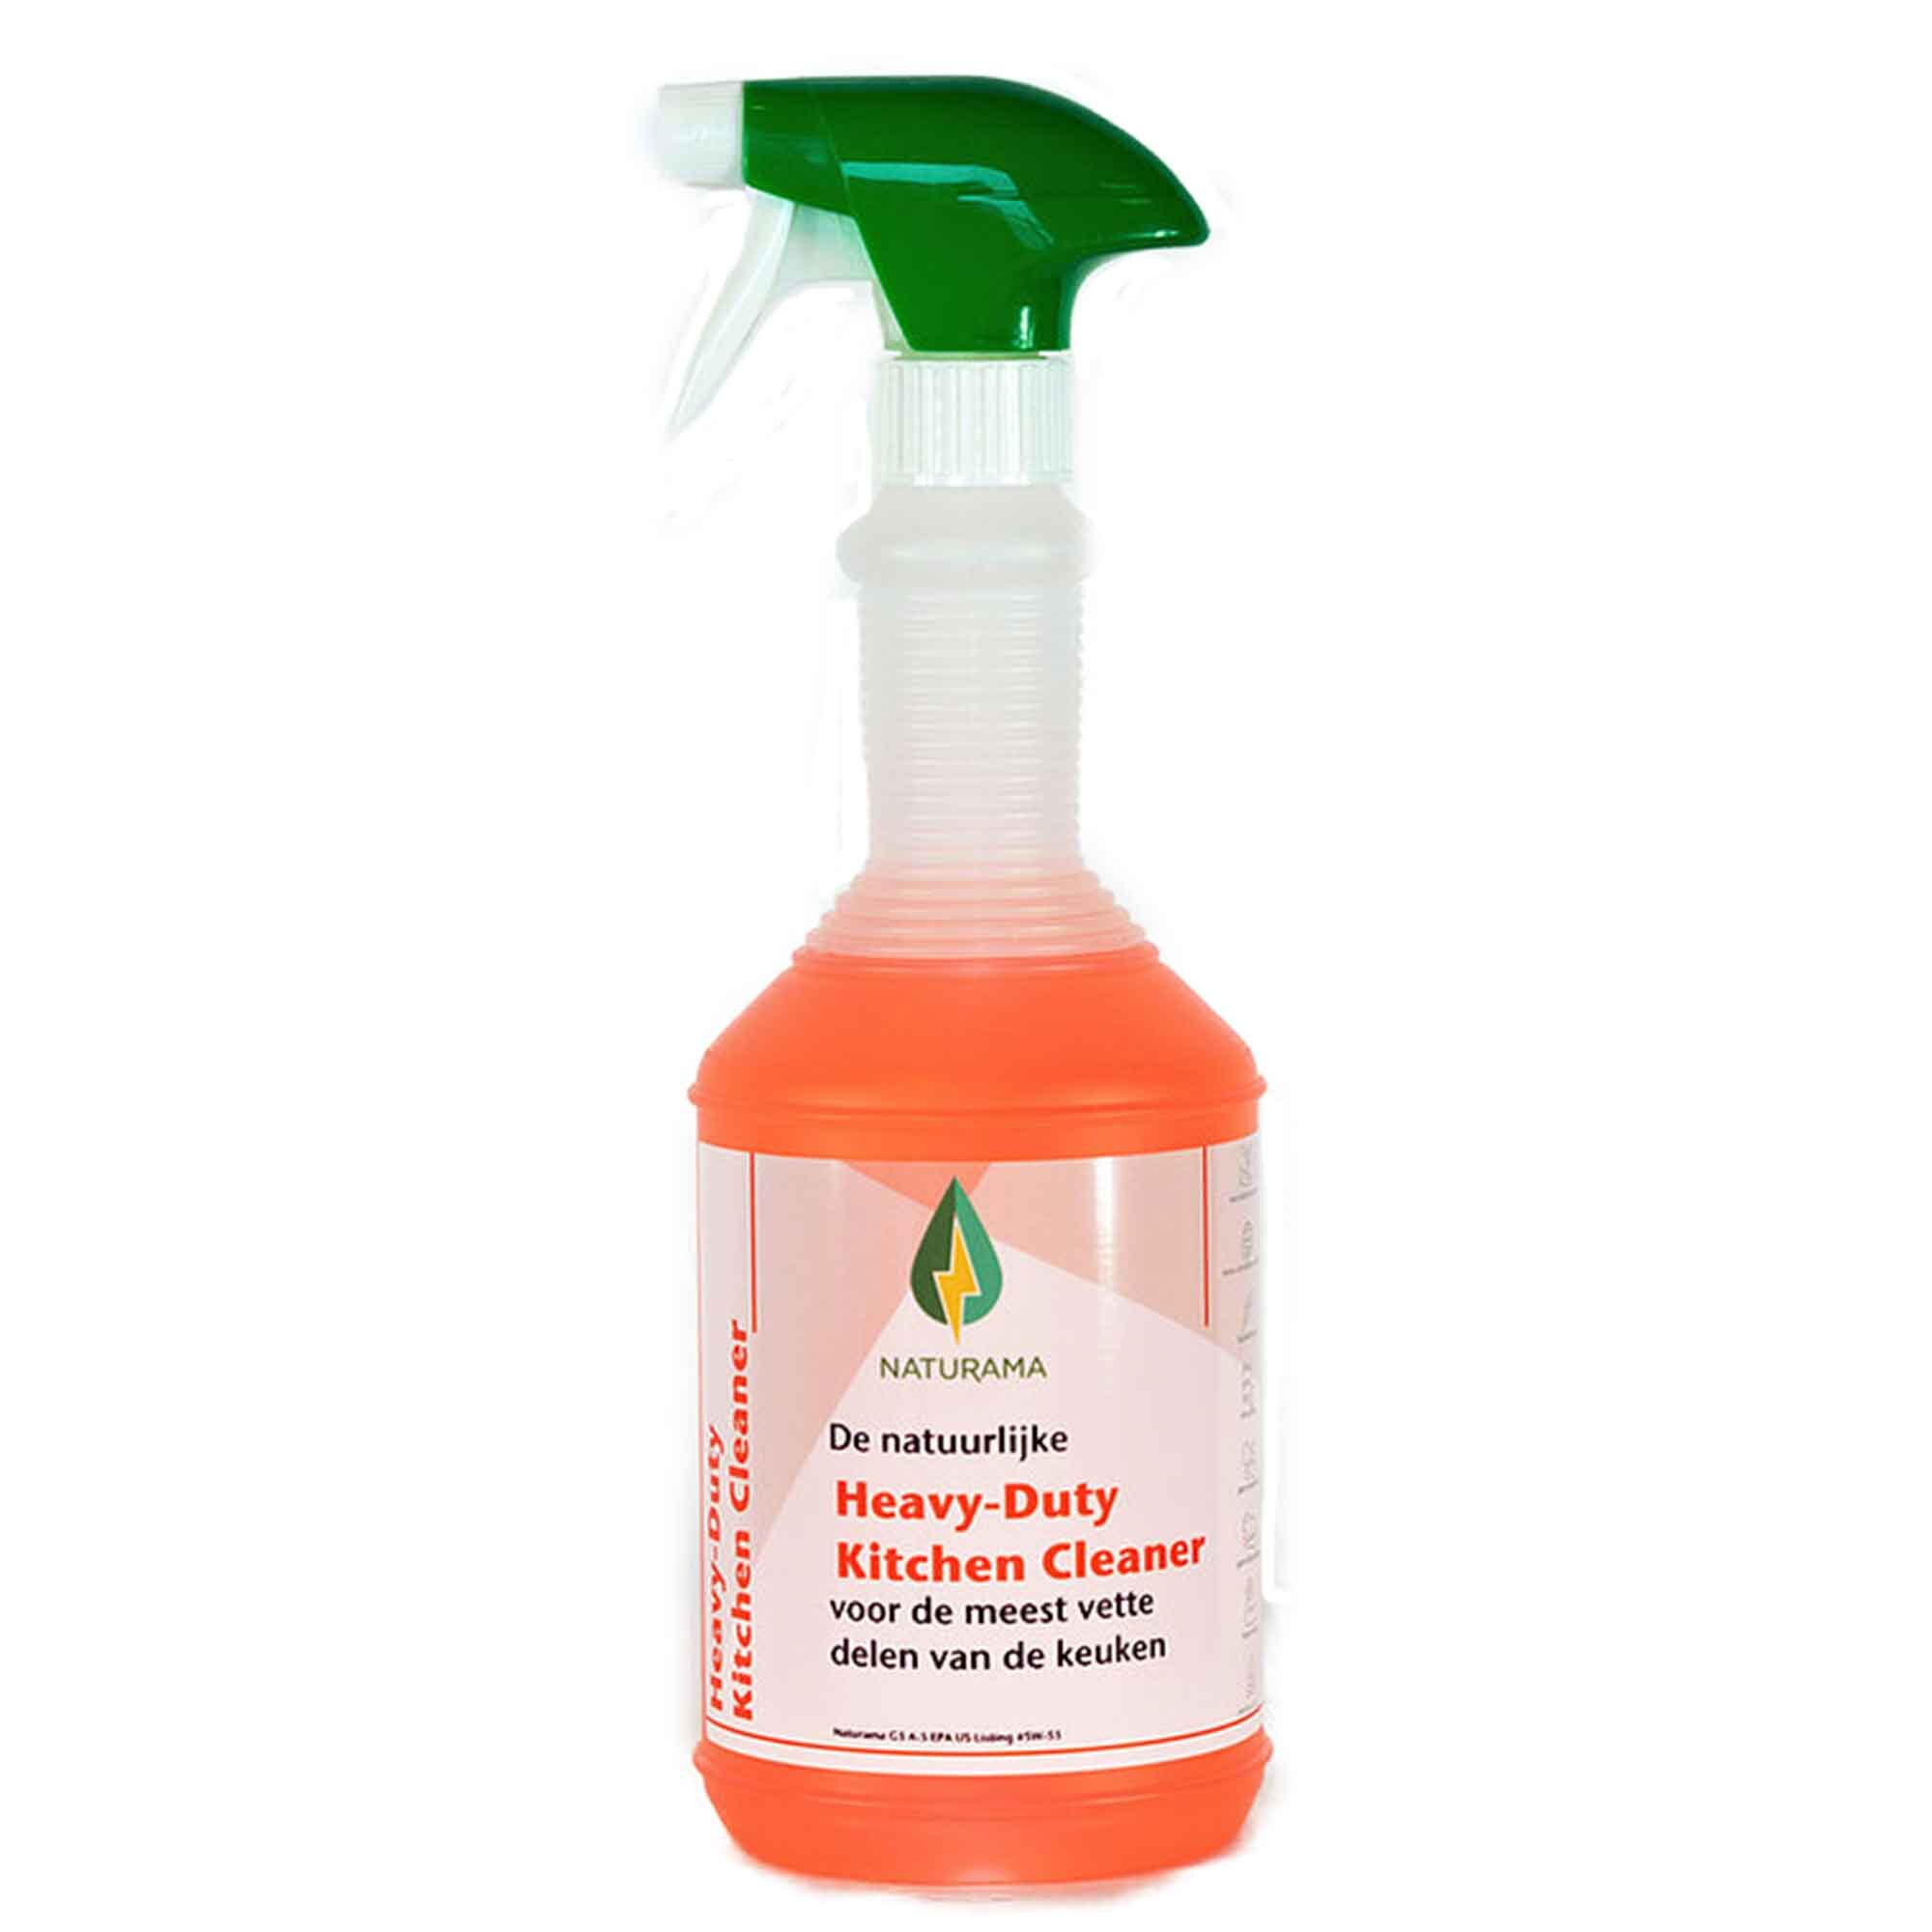 HD Keukenreiniger - Heavy Duty Kitchen Cleaner